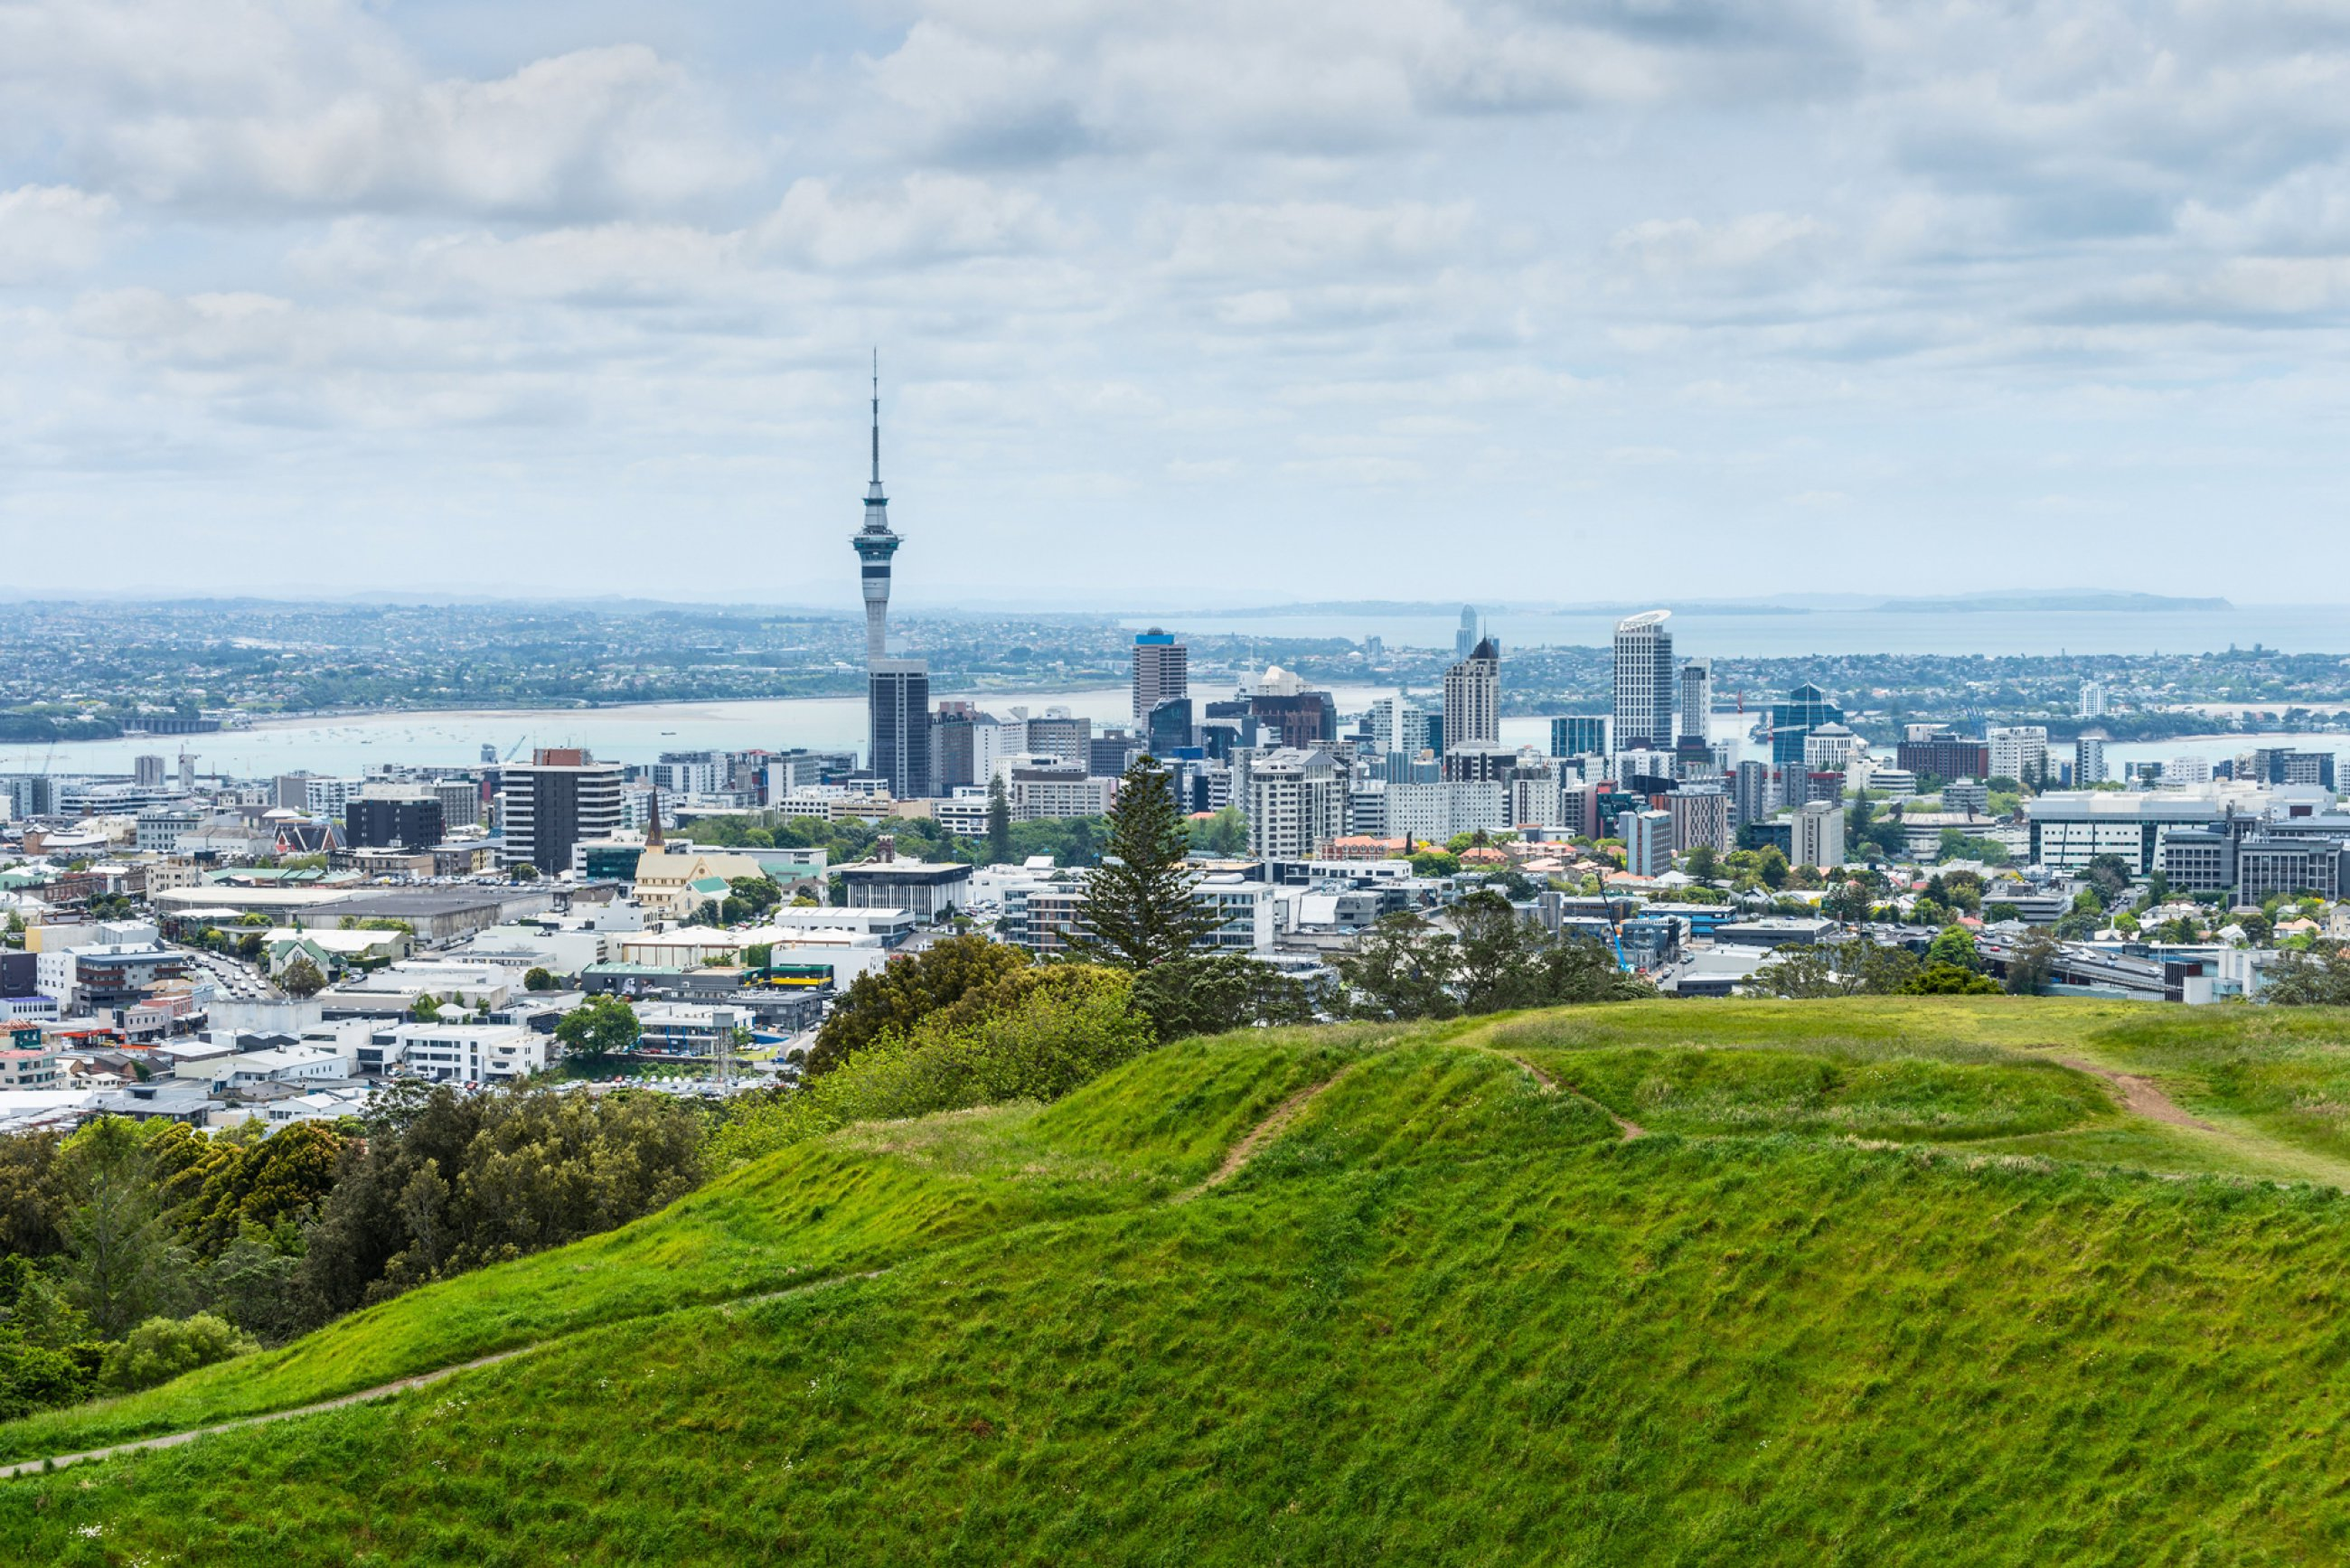 https://bubo.sk/uploads/galleries/5033/auckland-shutterstock-244597414-1-.jpg